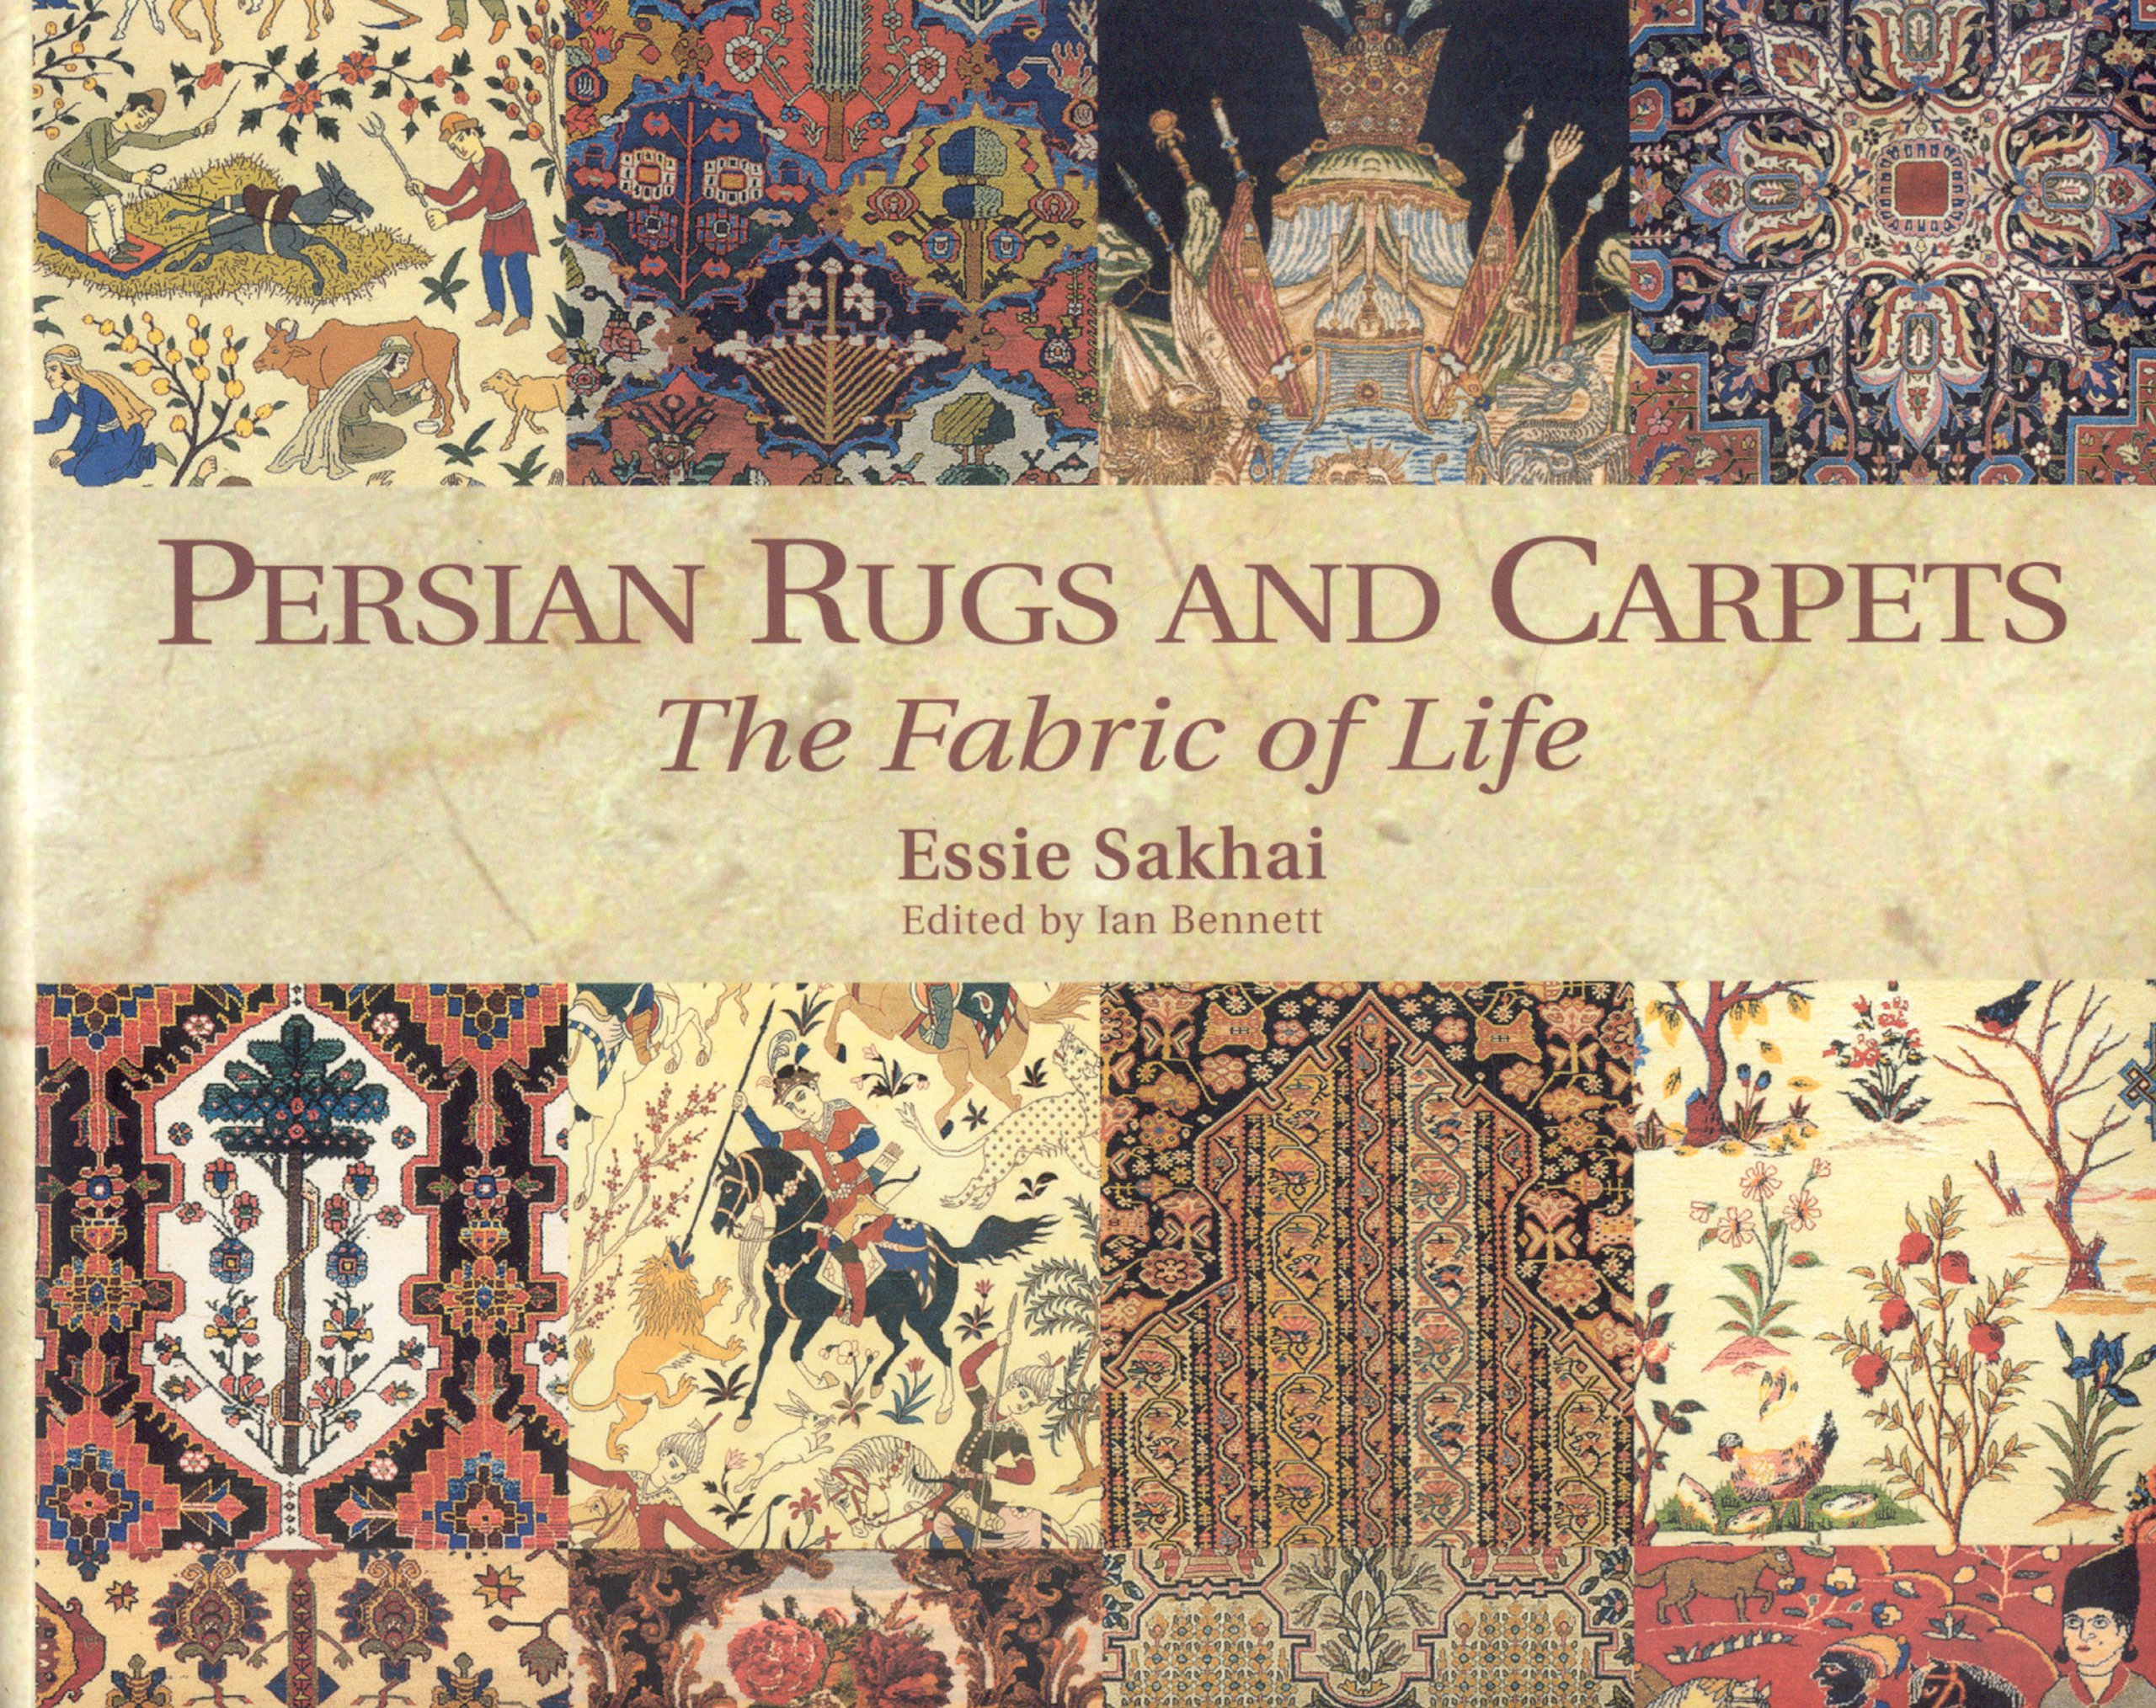 amazon persian rugs and carpets the fabric of life essie sakhai